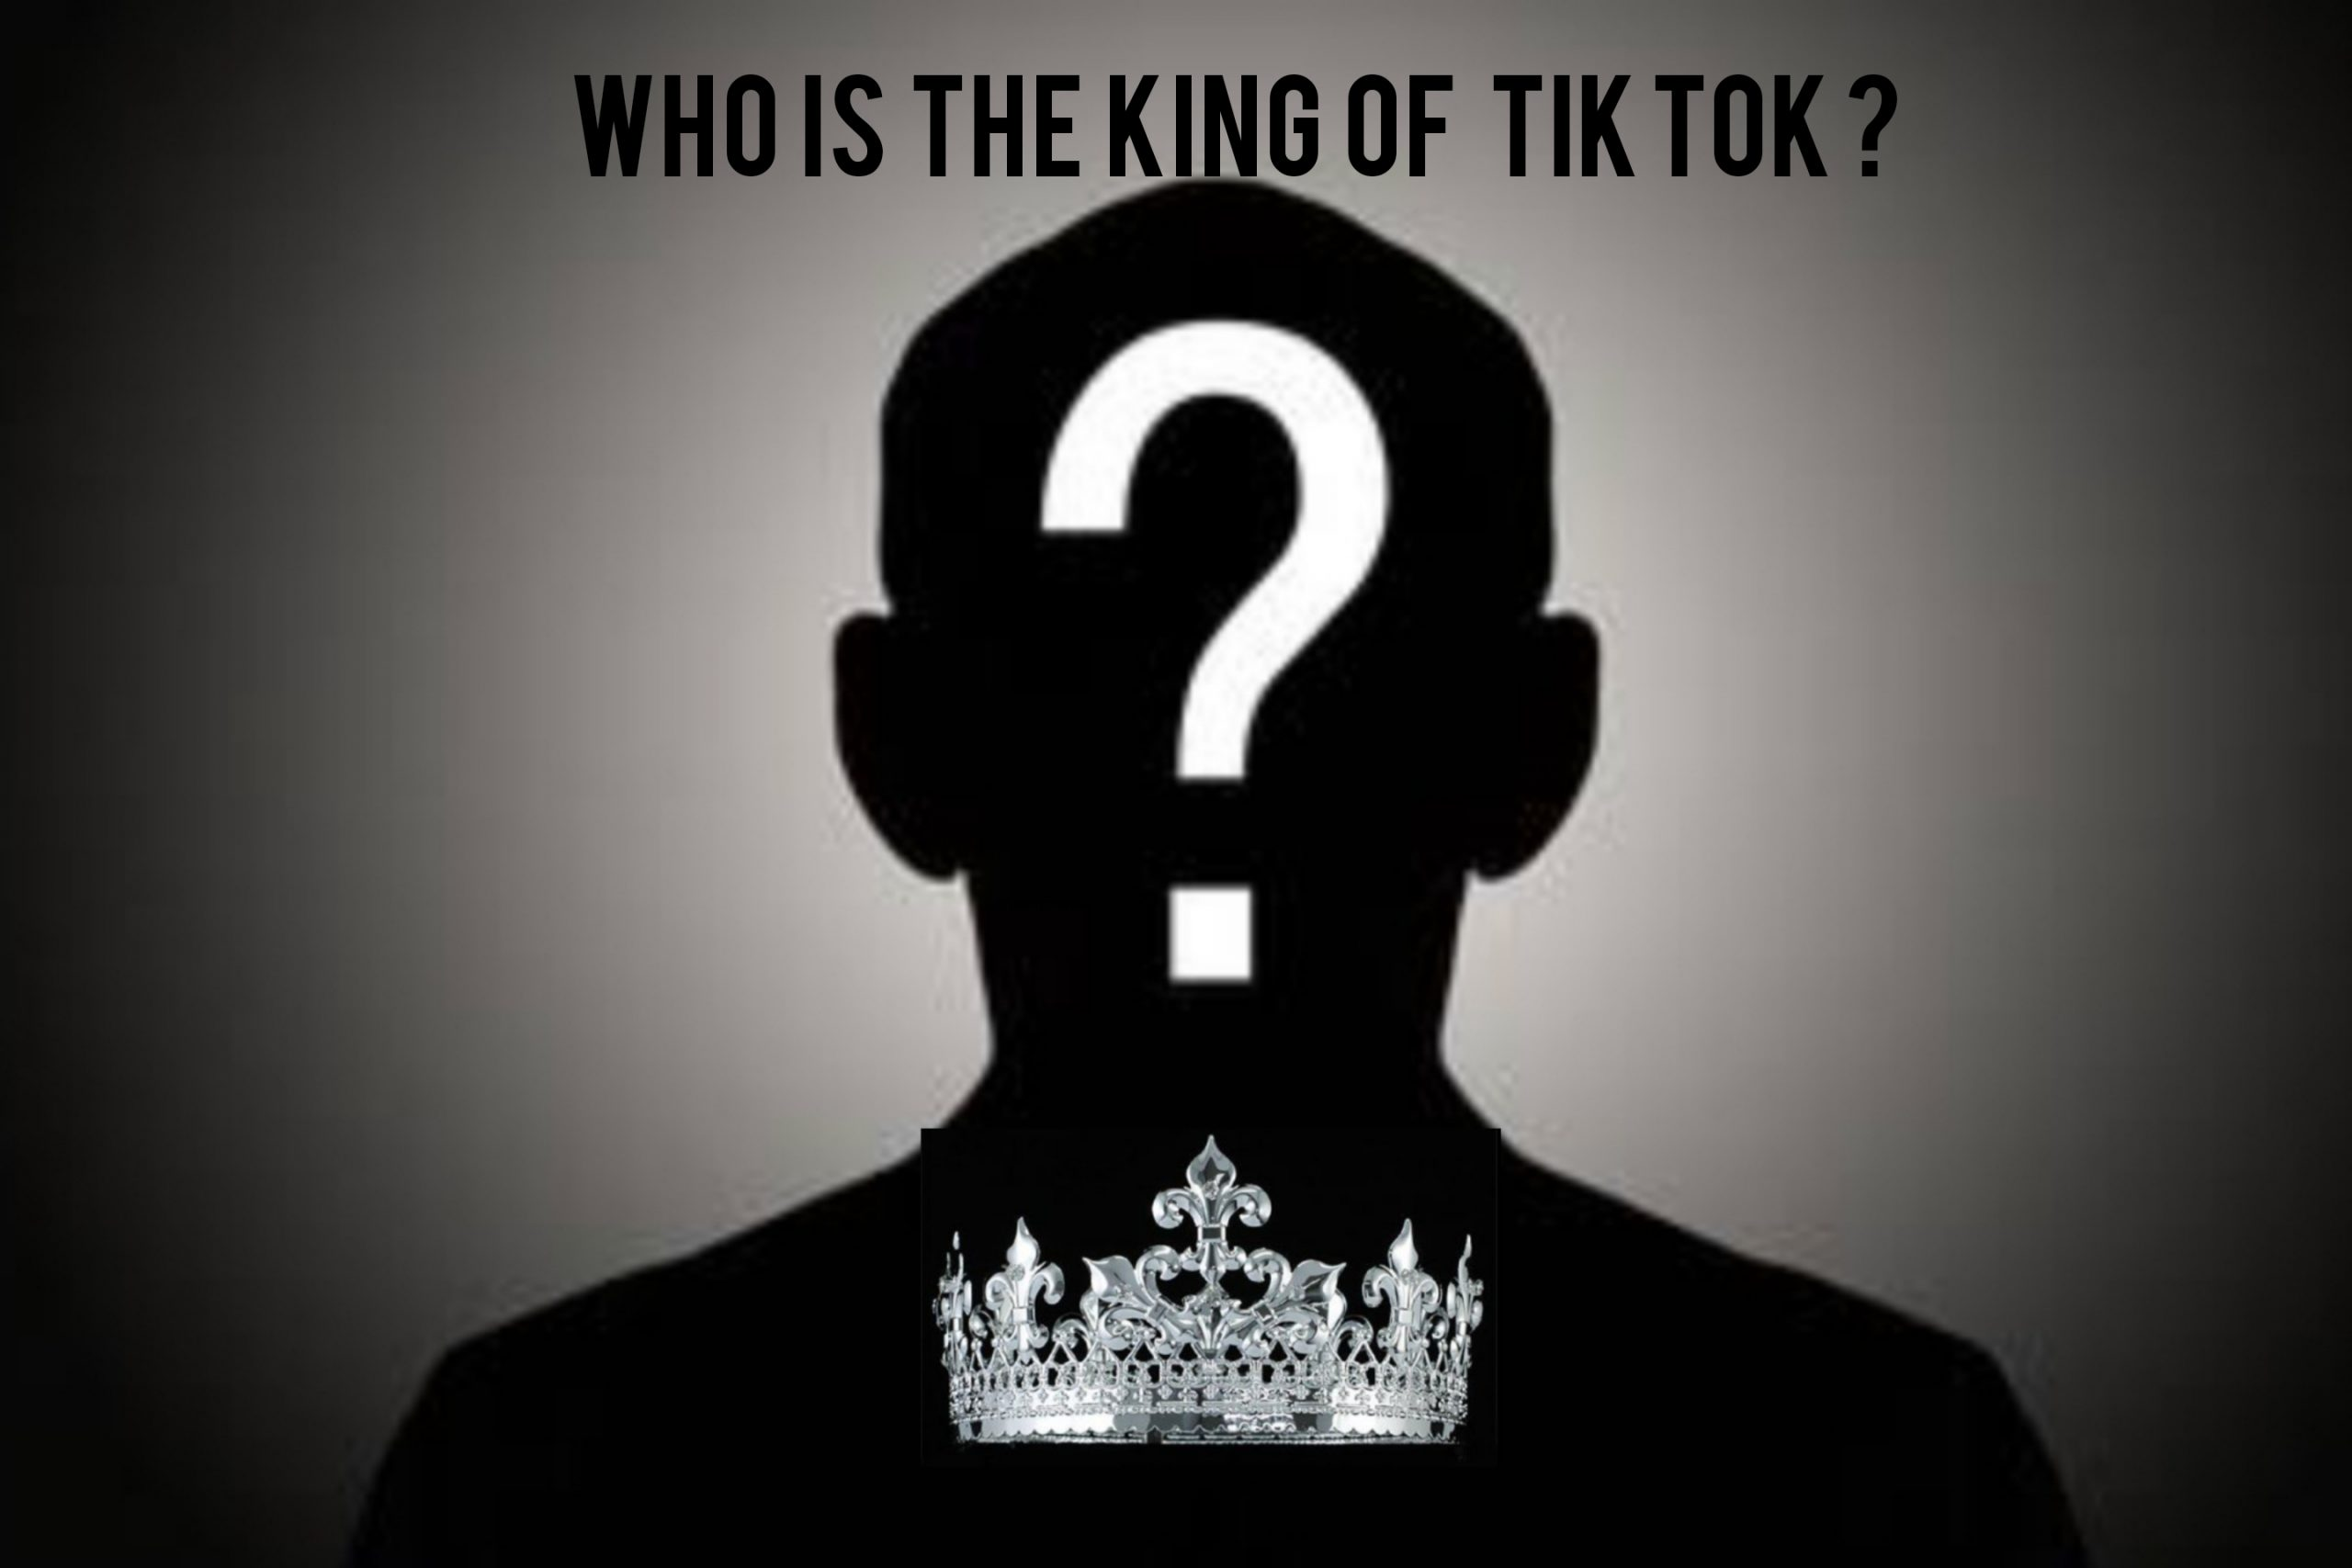 who is the king of tiktok